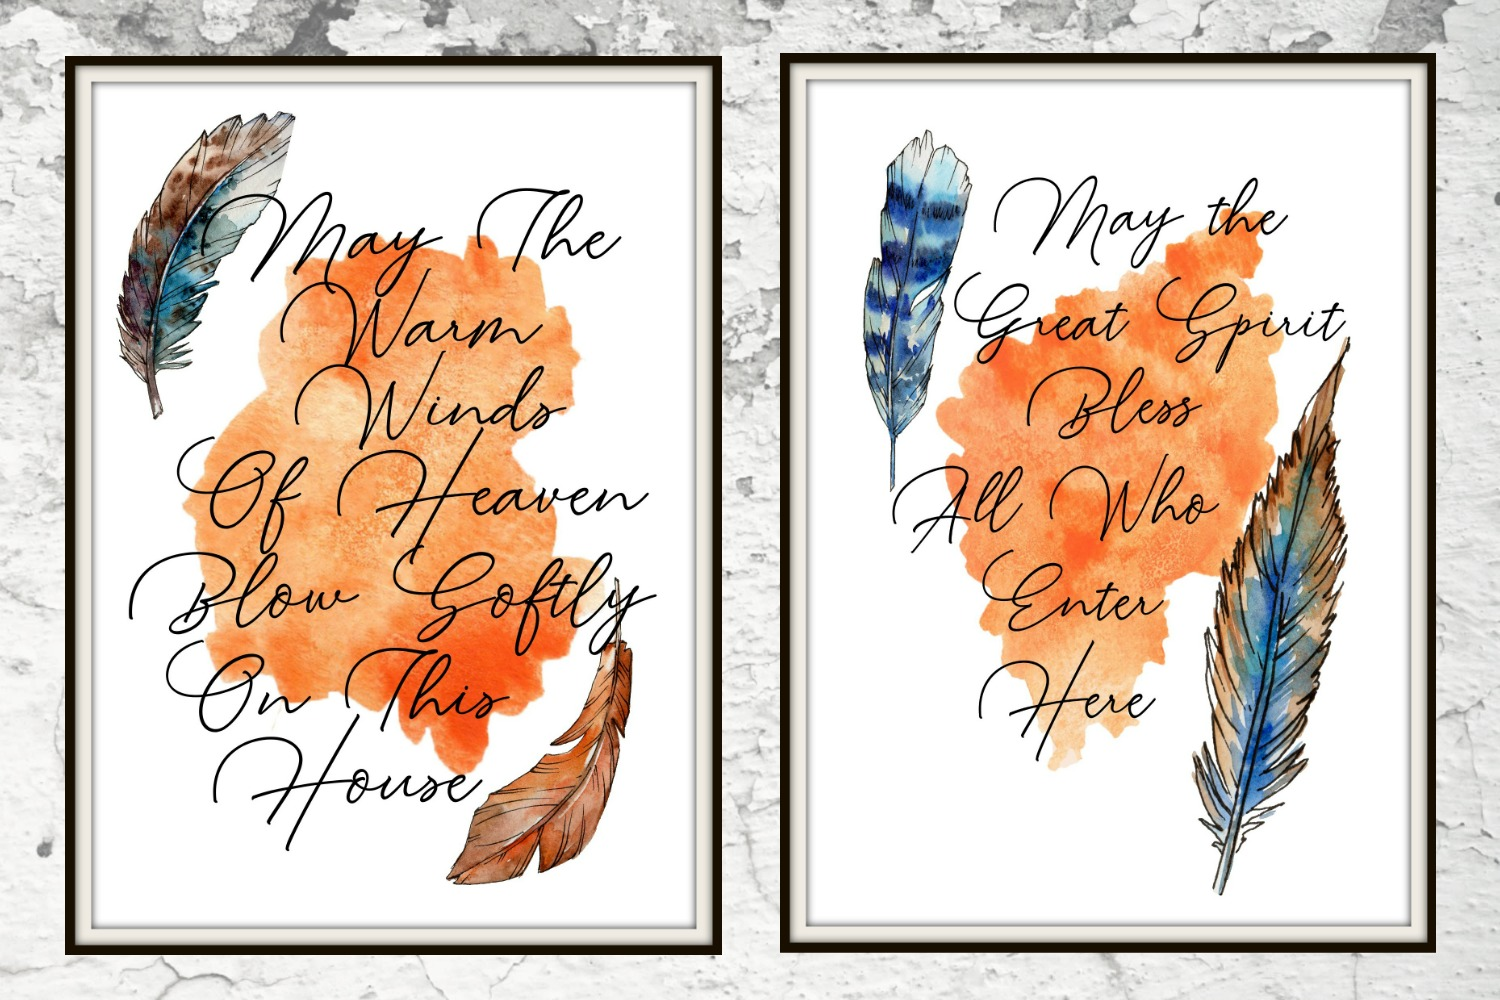 Native American Blessings – Free Printable Art and Wallpaper